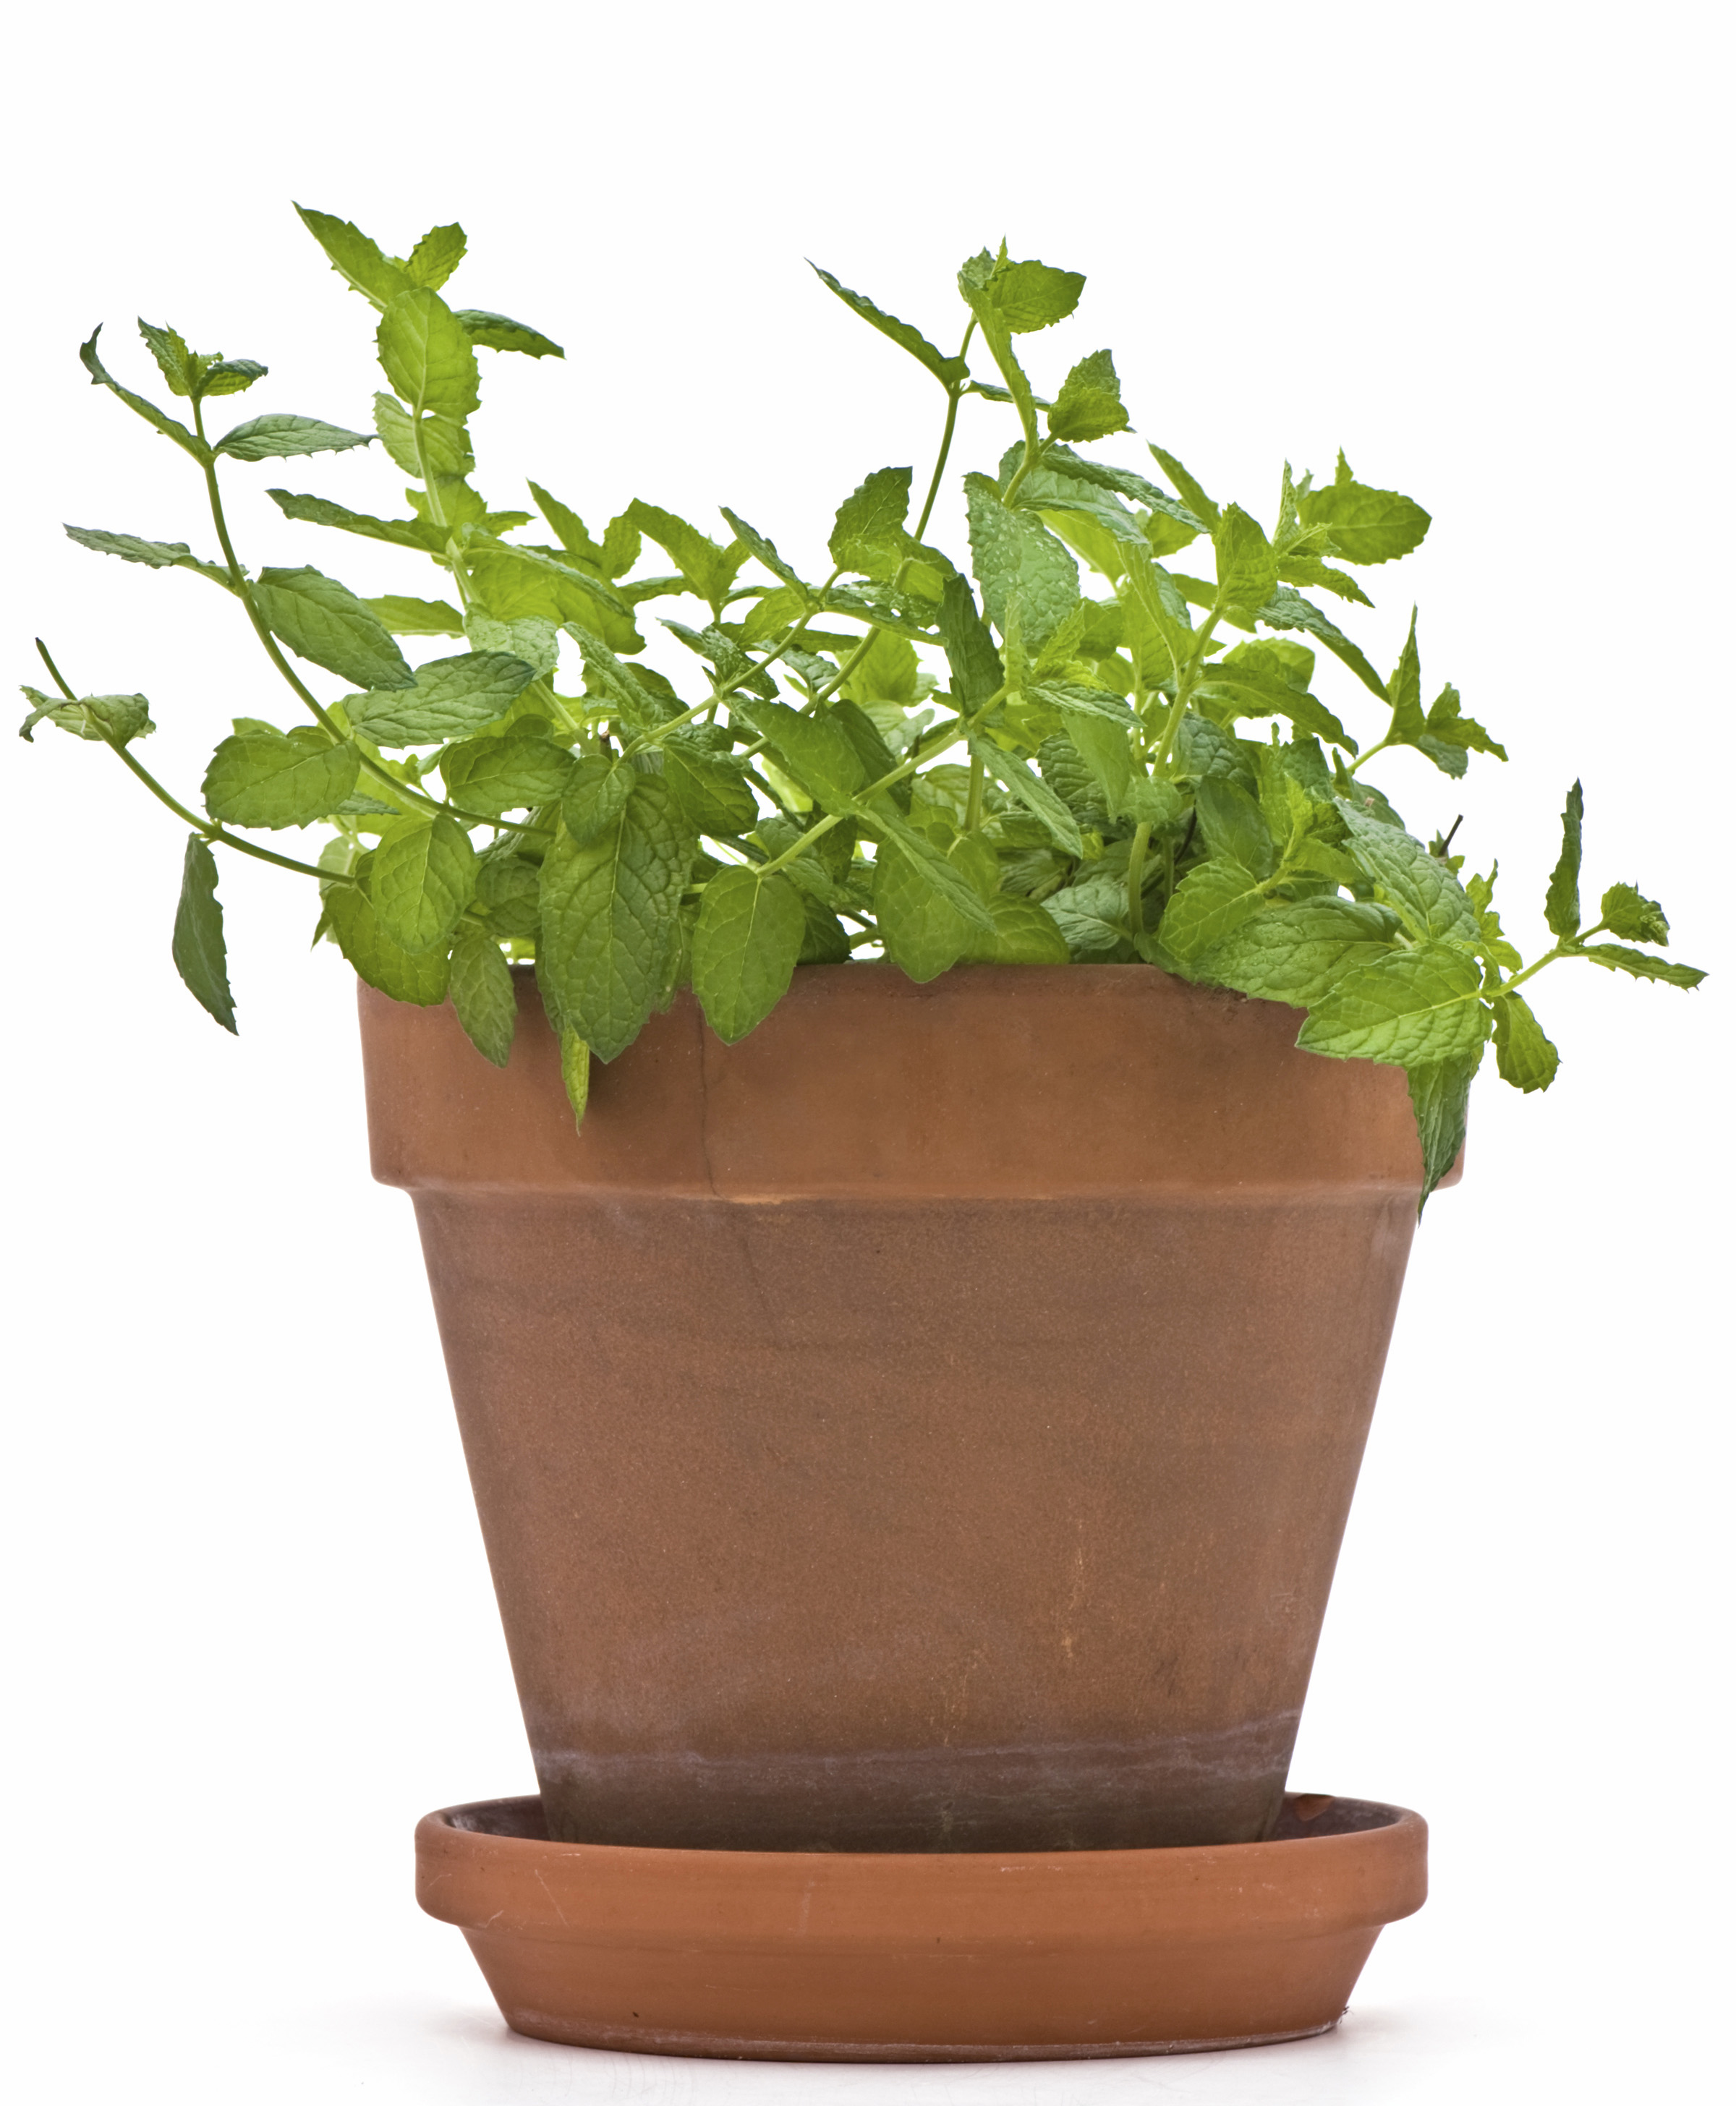 Mint Plant in a Flower Pot